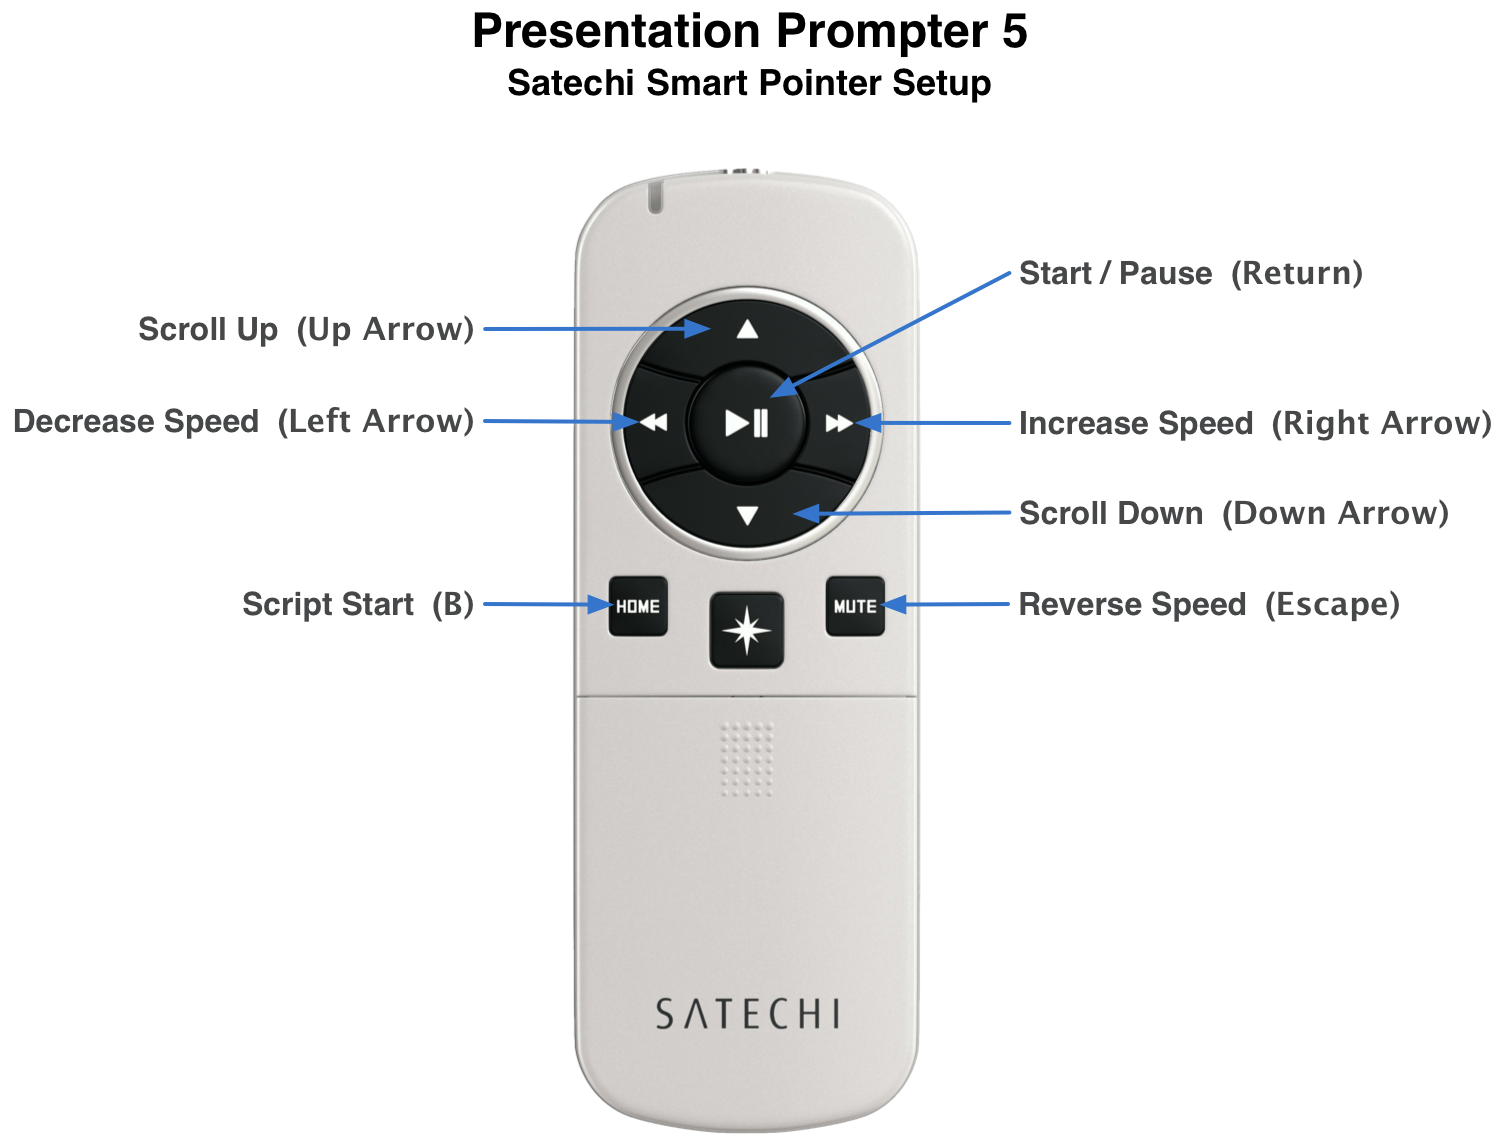 Satechi Smart Pointer Configuration